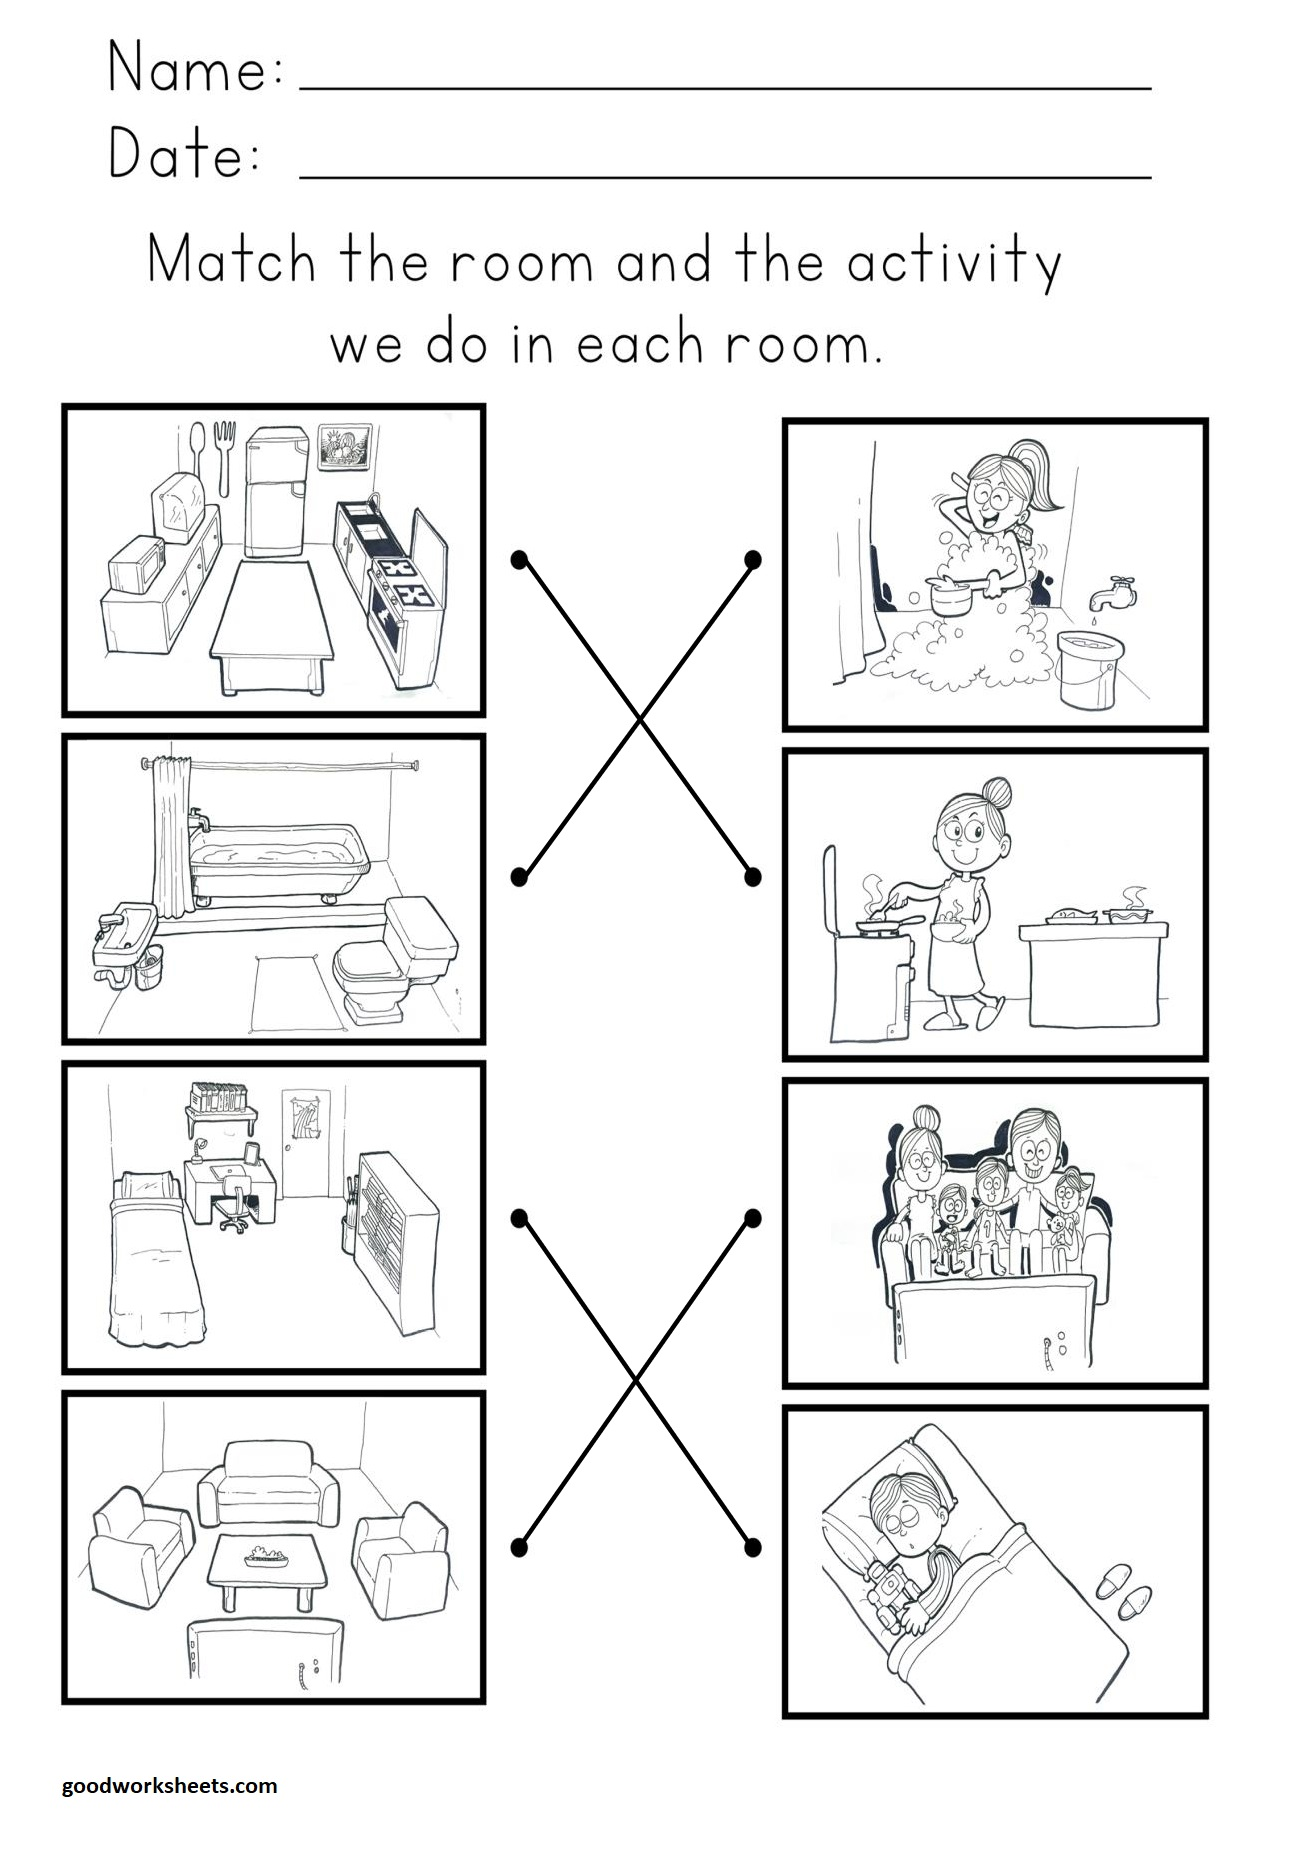 Rooms And Activity Worksheets Anwer Key